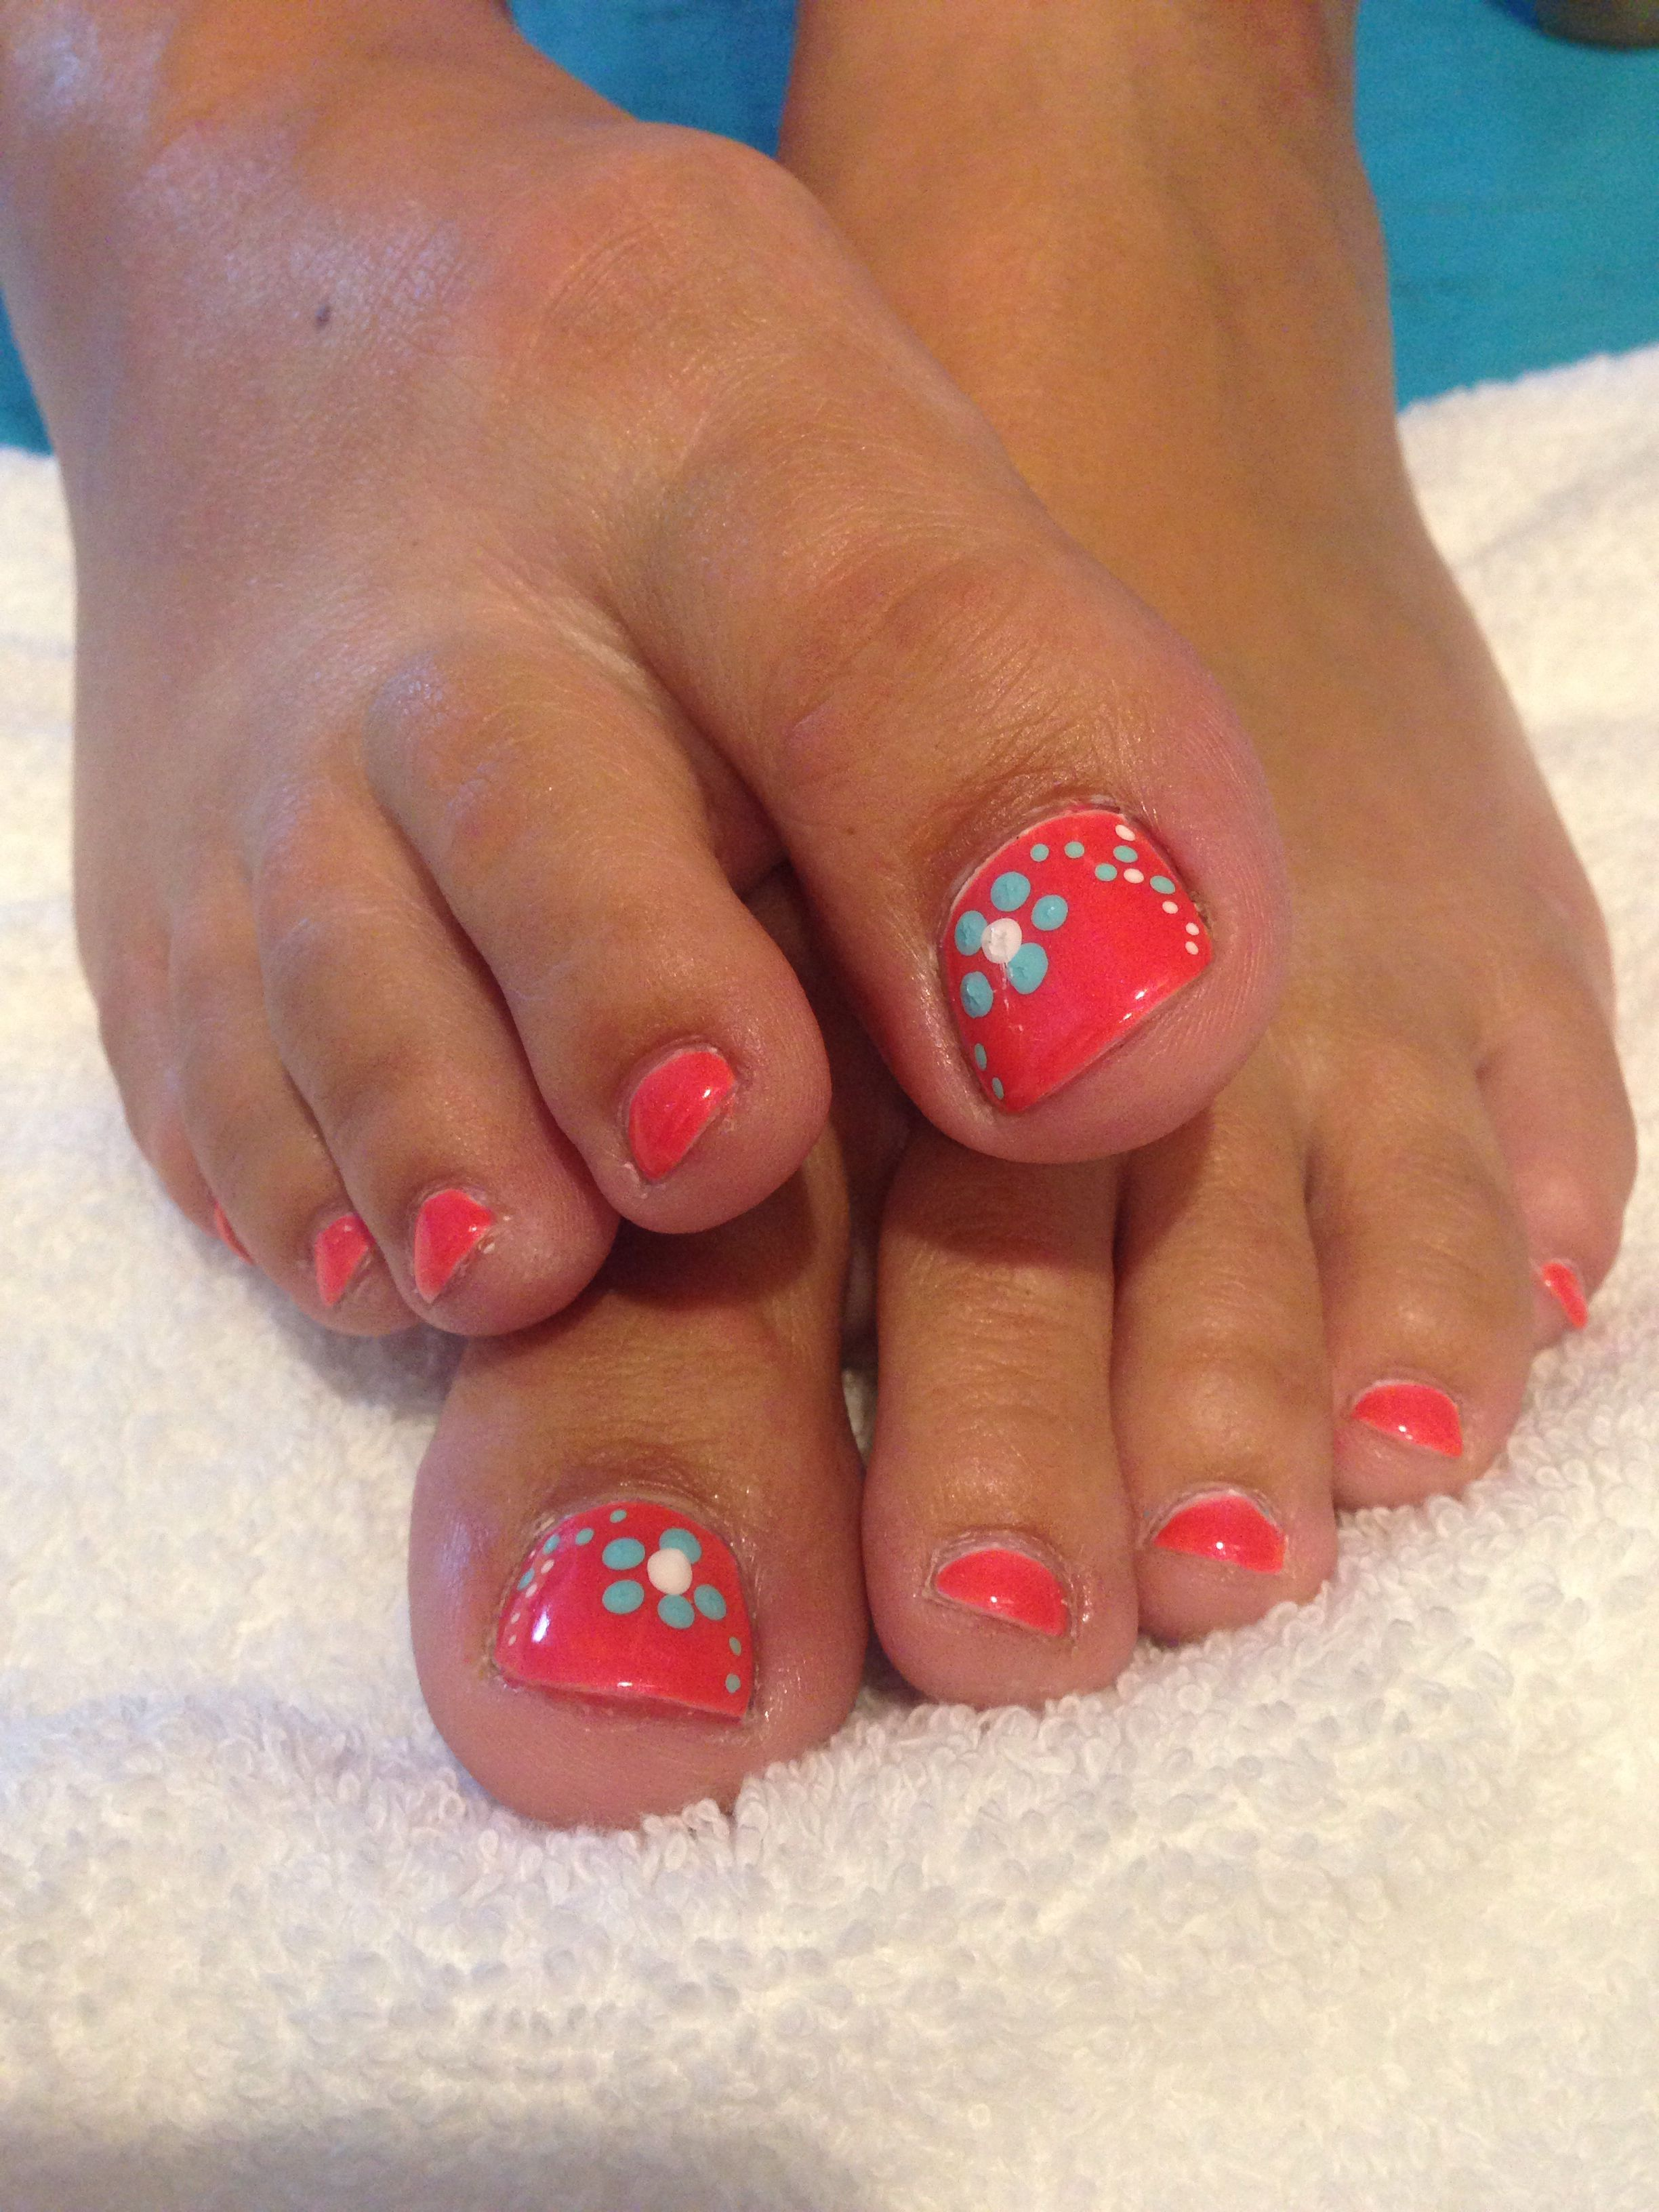 Polished Pinkies Utah: Neon Coral Shellac With Blue